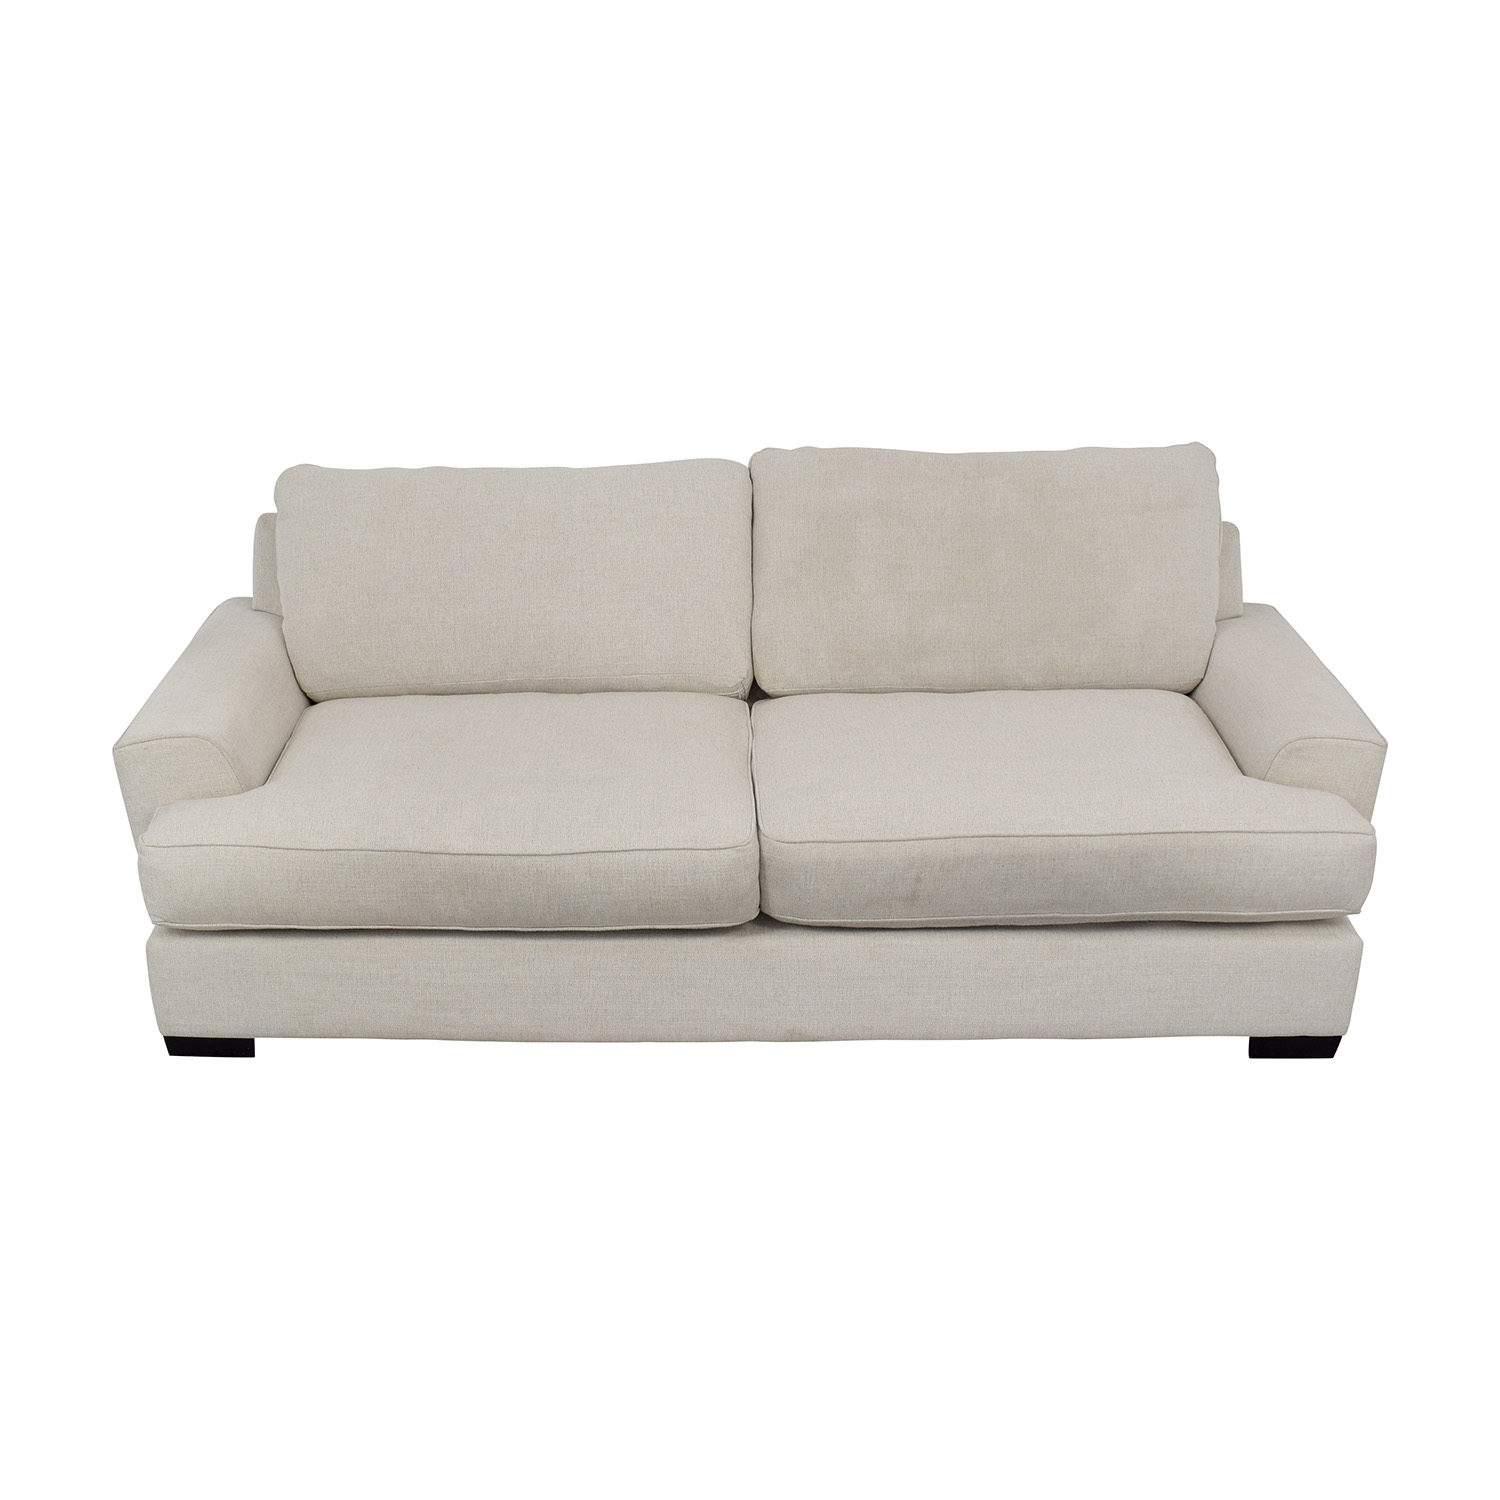 Macy's Macy's Ainsley Fabric Sofa second hand